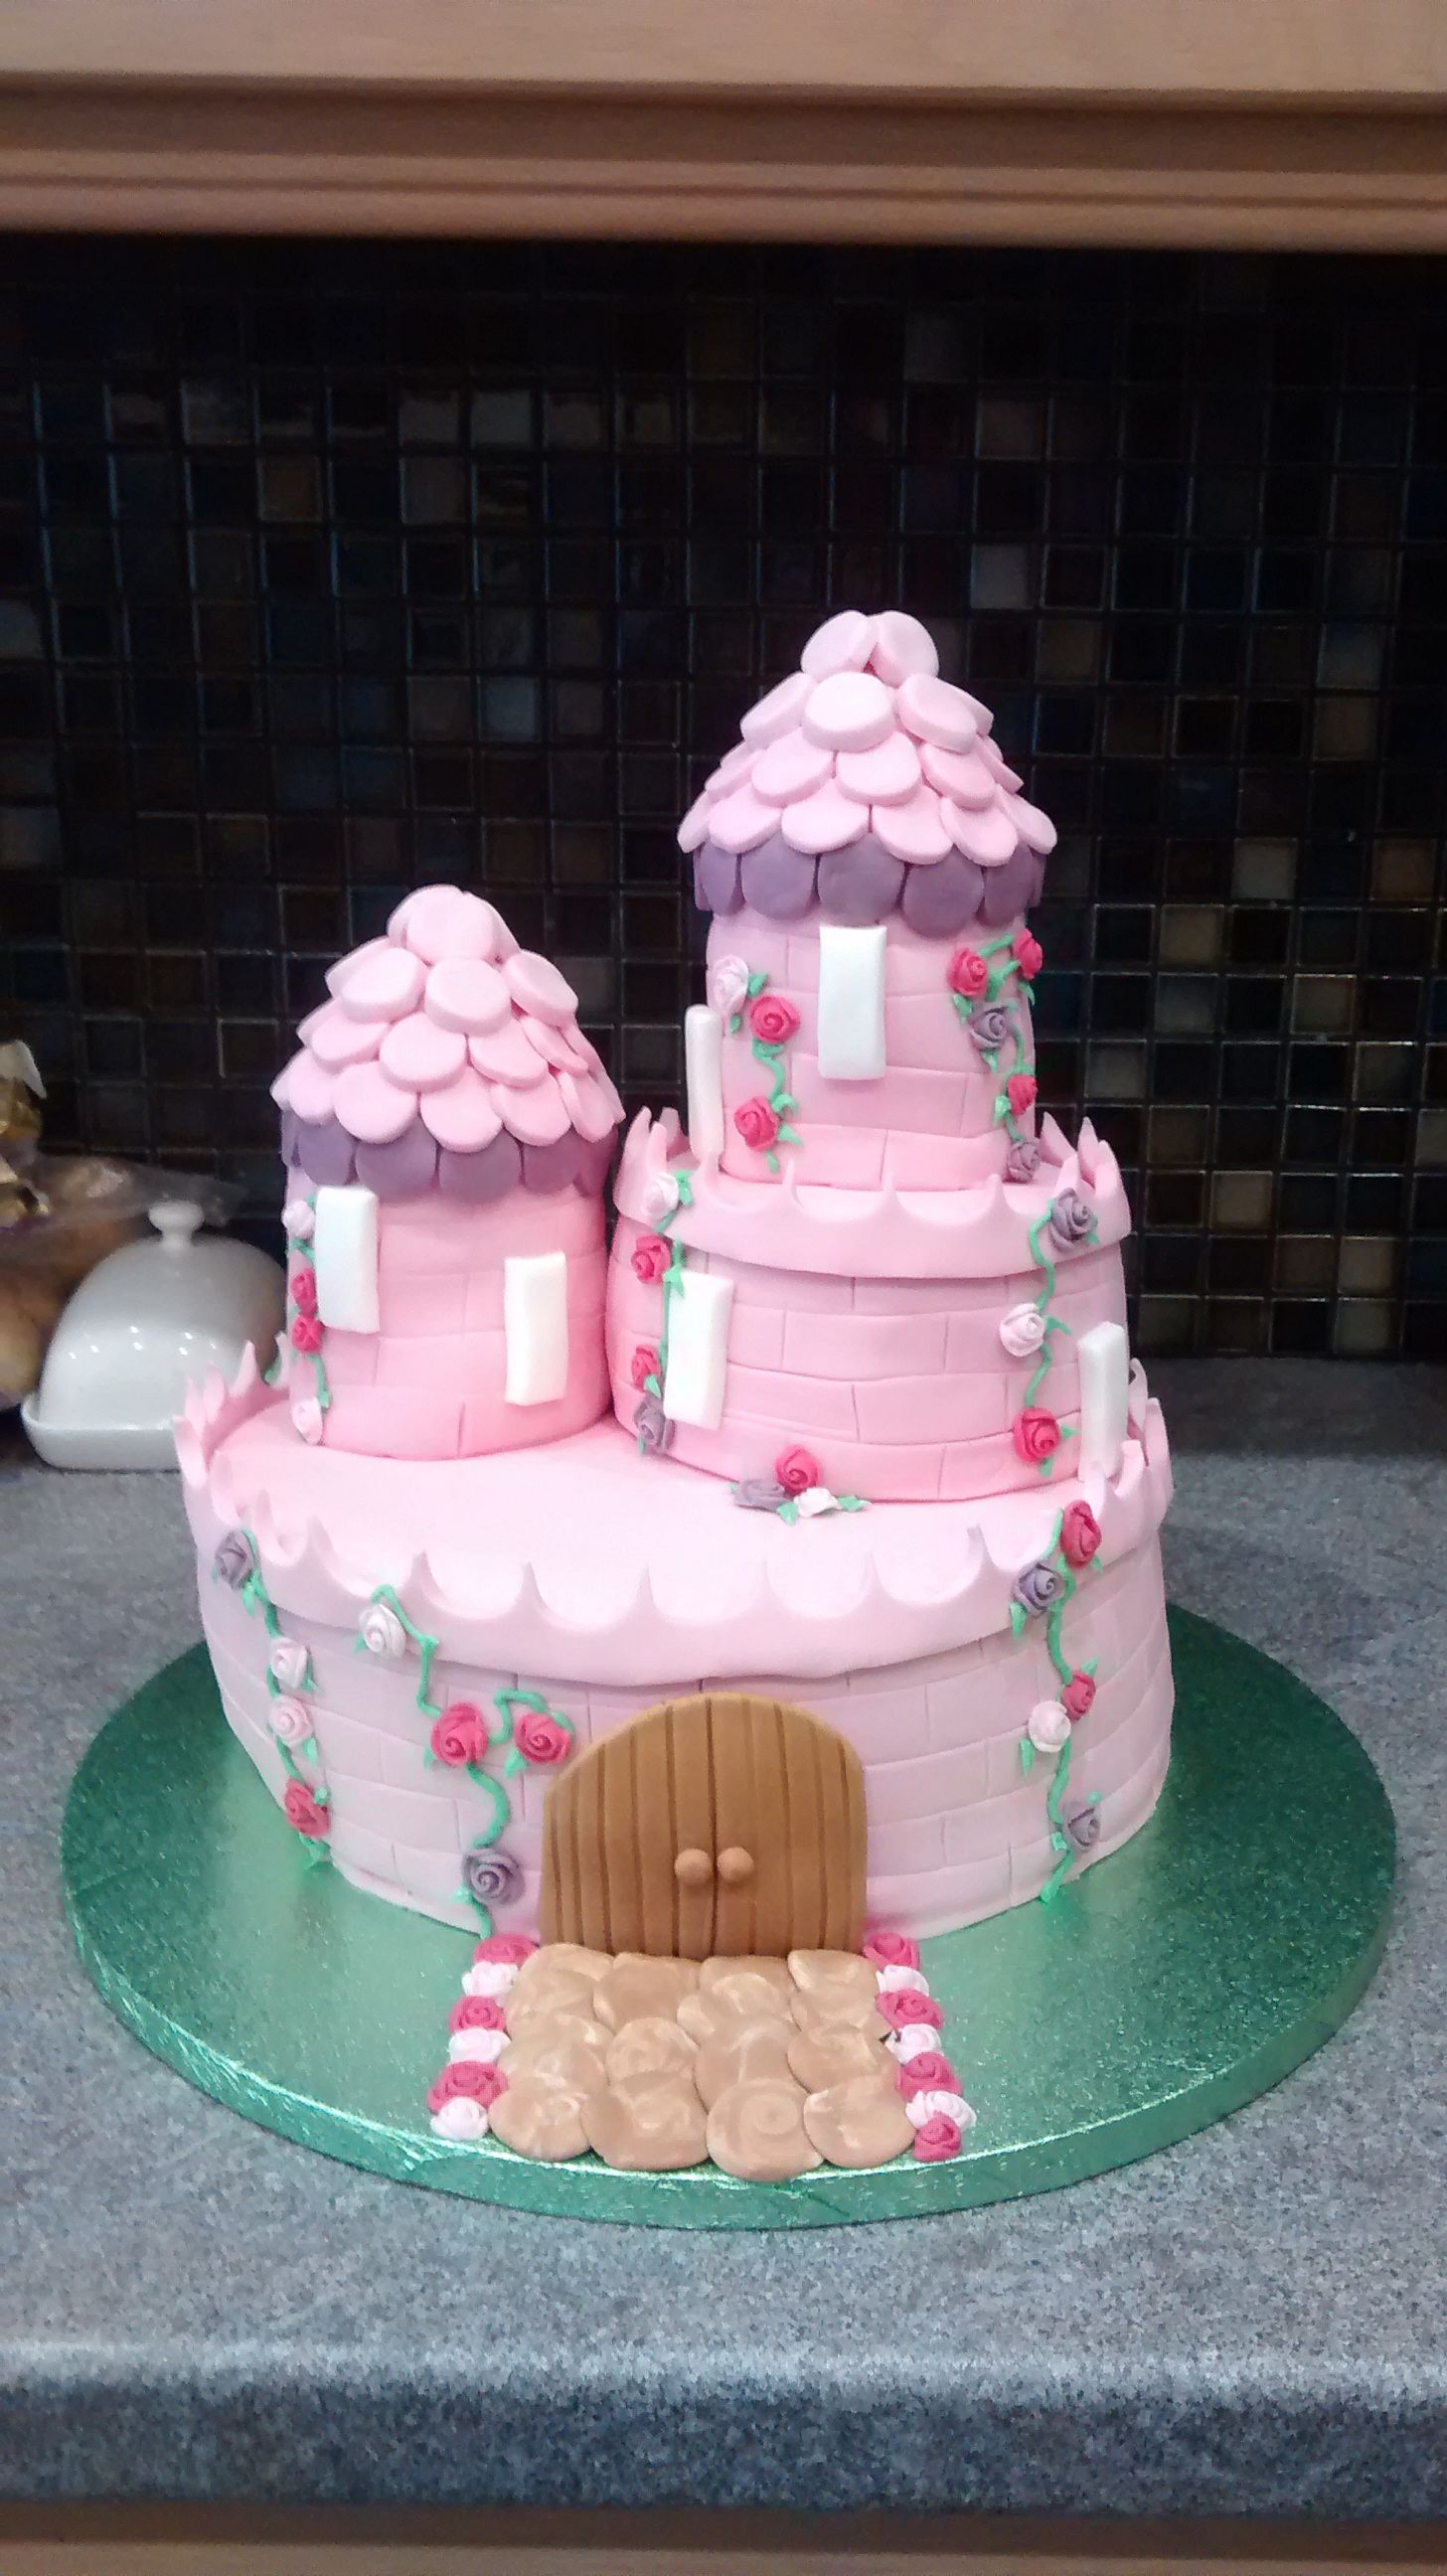 Princess castle cake by Amber Mitchell